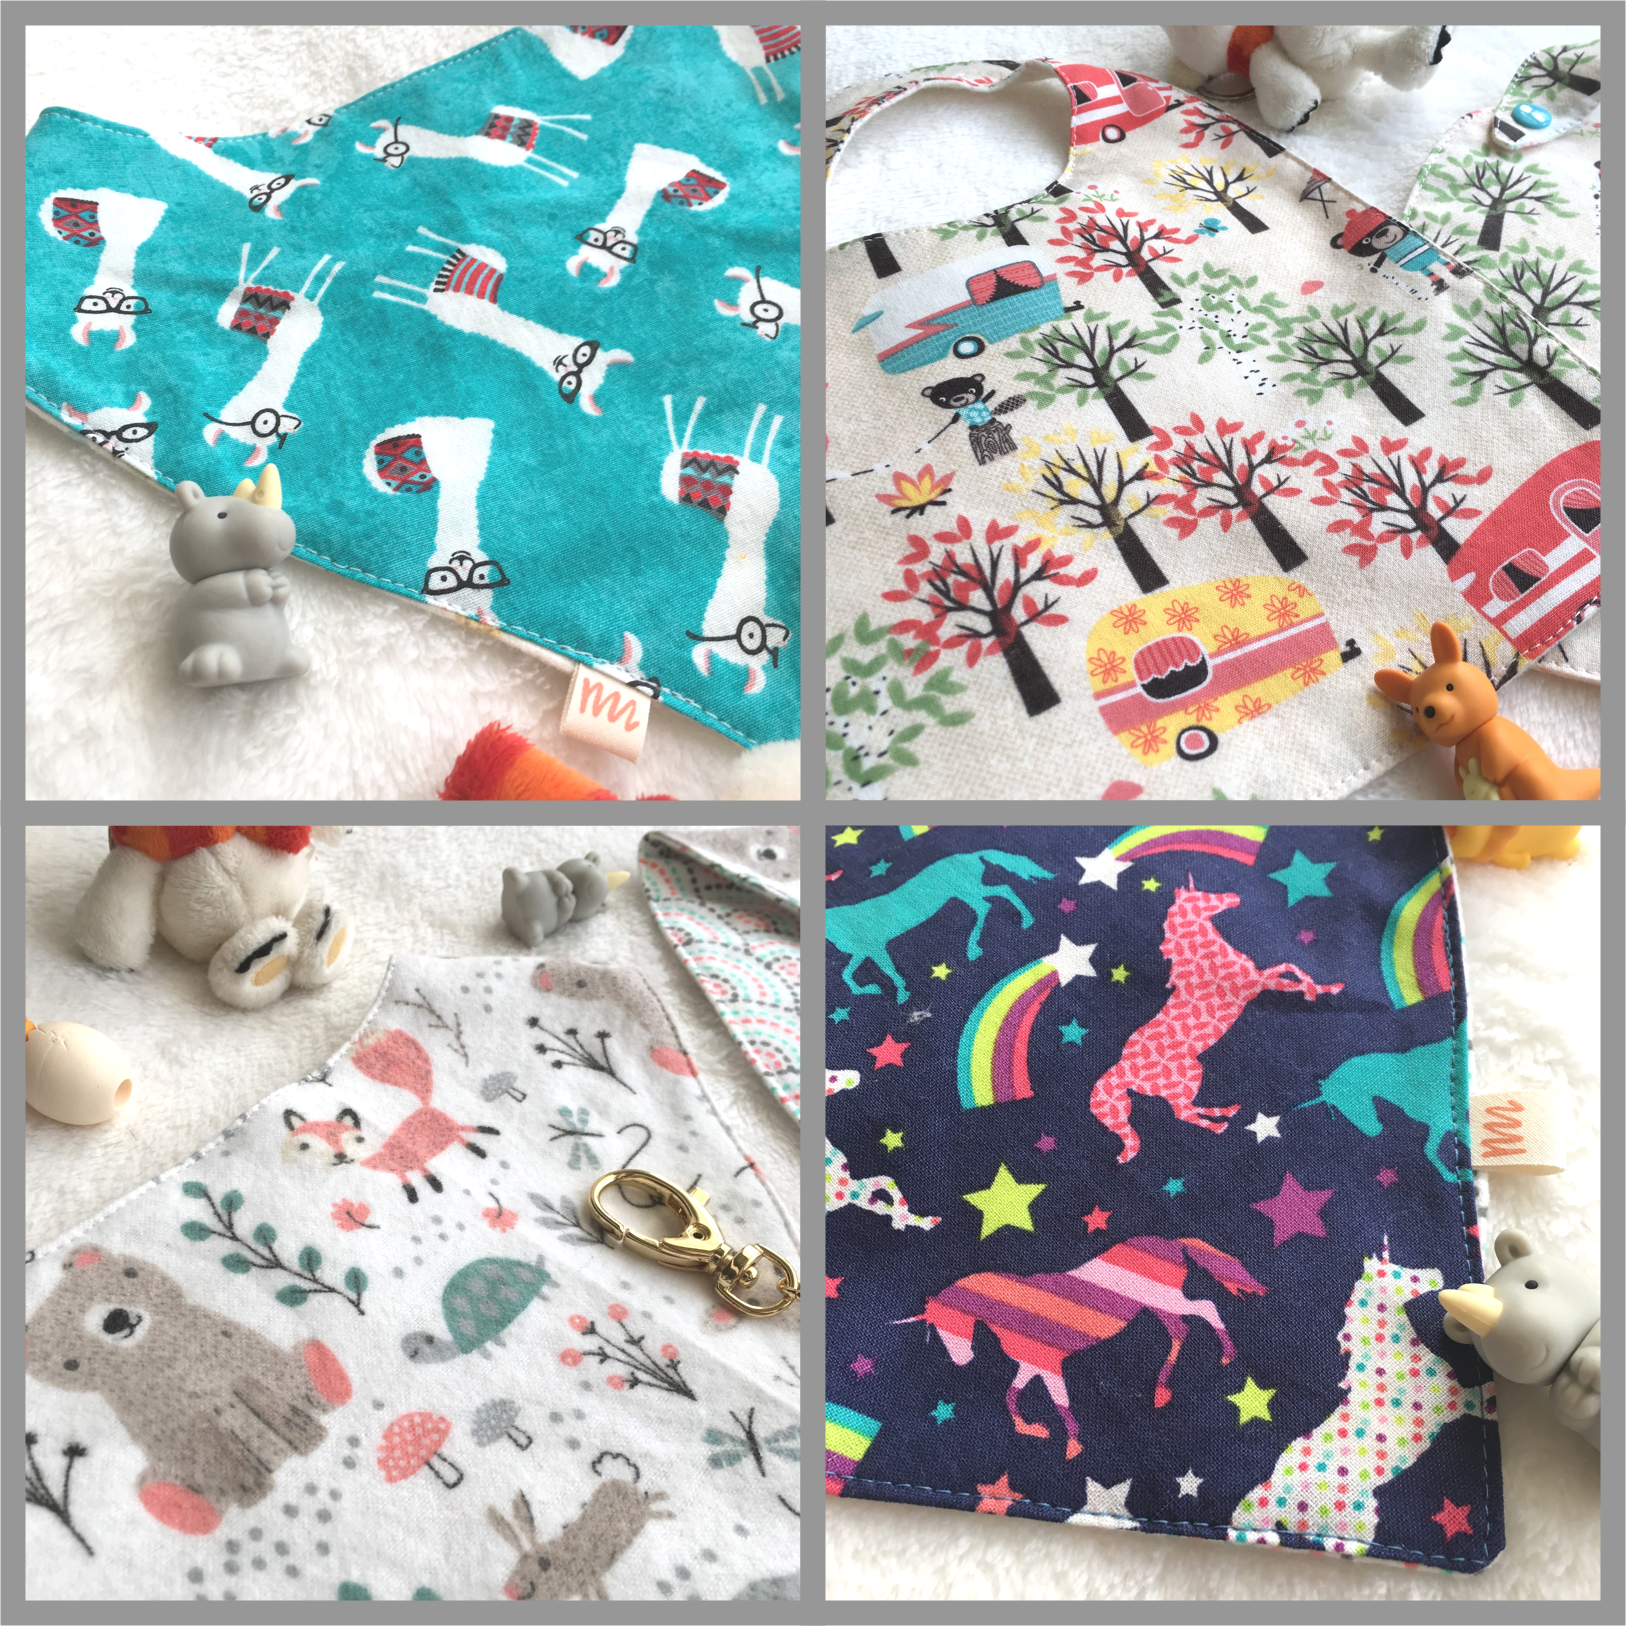 Baby Bibs  - We are very happy to introduce the latest line of baby accessories - traditional and bandana style bibs.  These are made with 100% cotton and flannel so they are super soft and absorbent.  And with so many prints to choose from, they are all practical yet stylish!